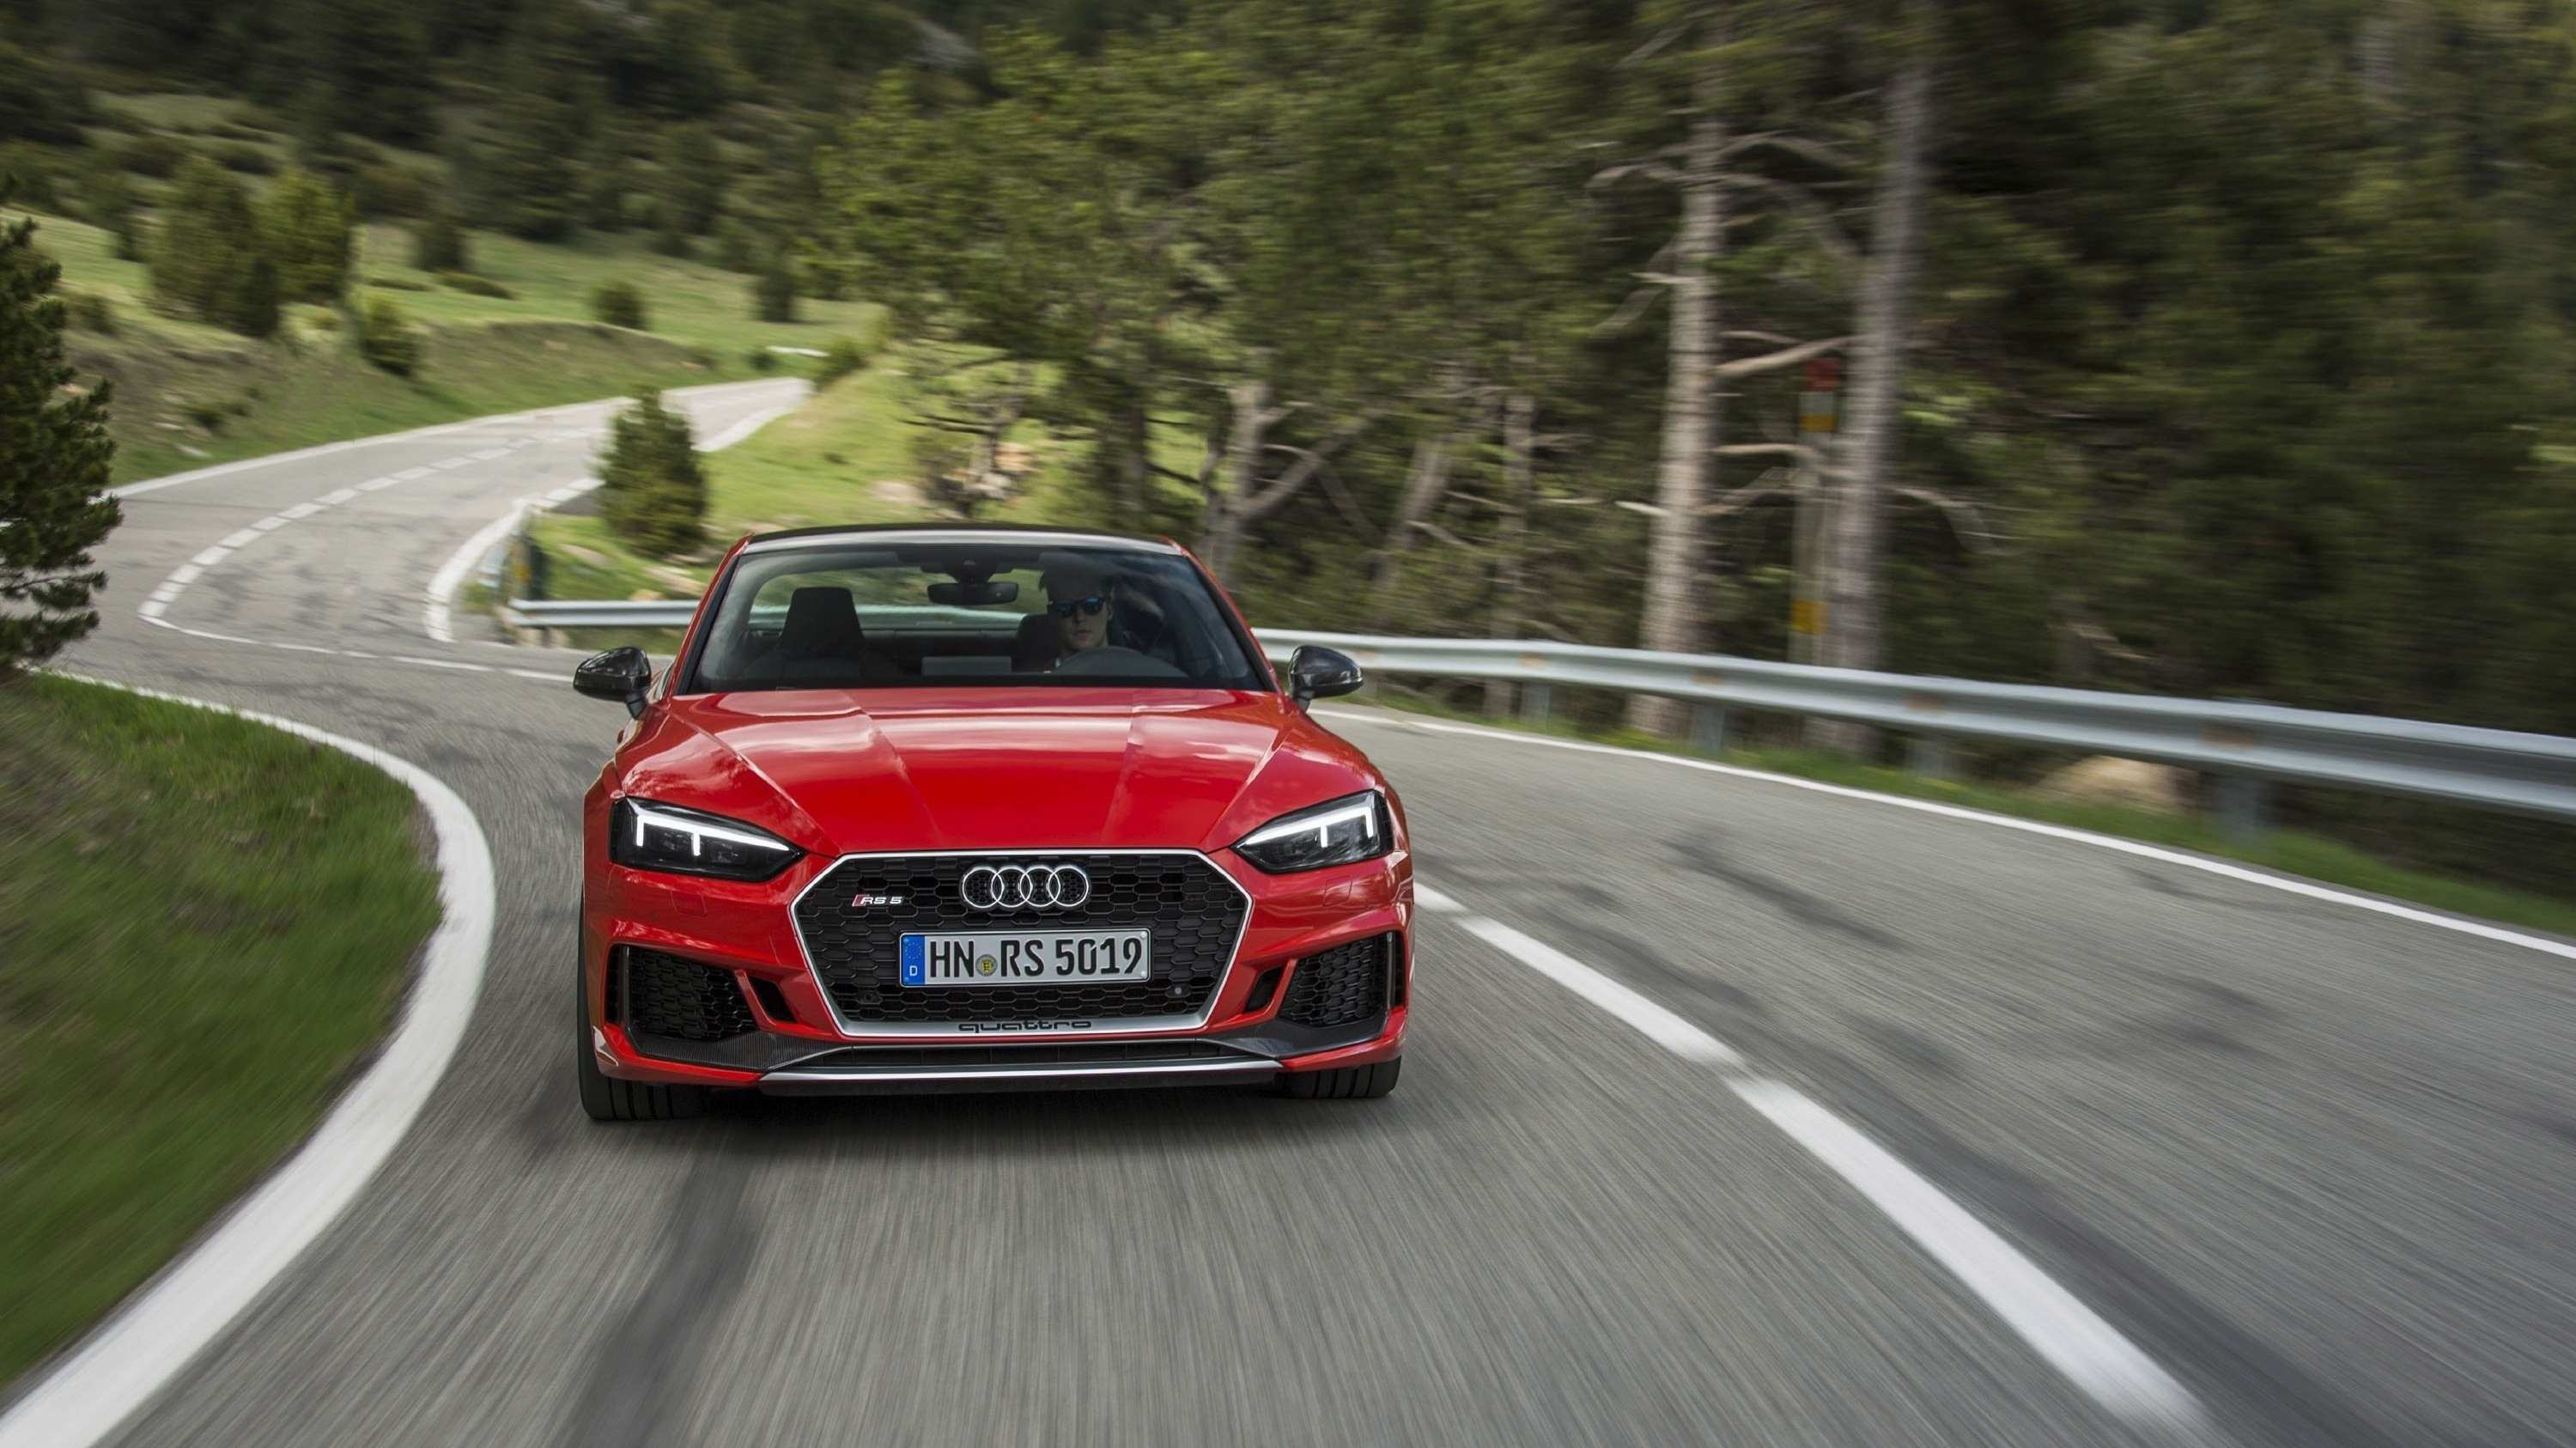 34 A 2020 Audi Rs5 Tdi Pricing